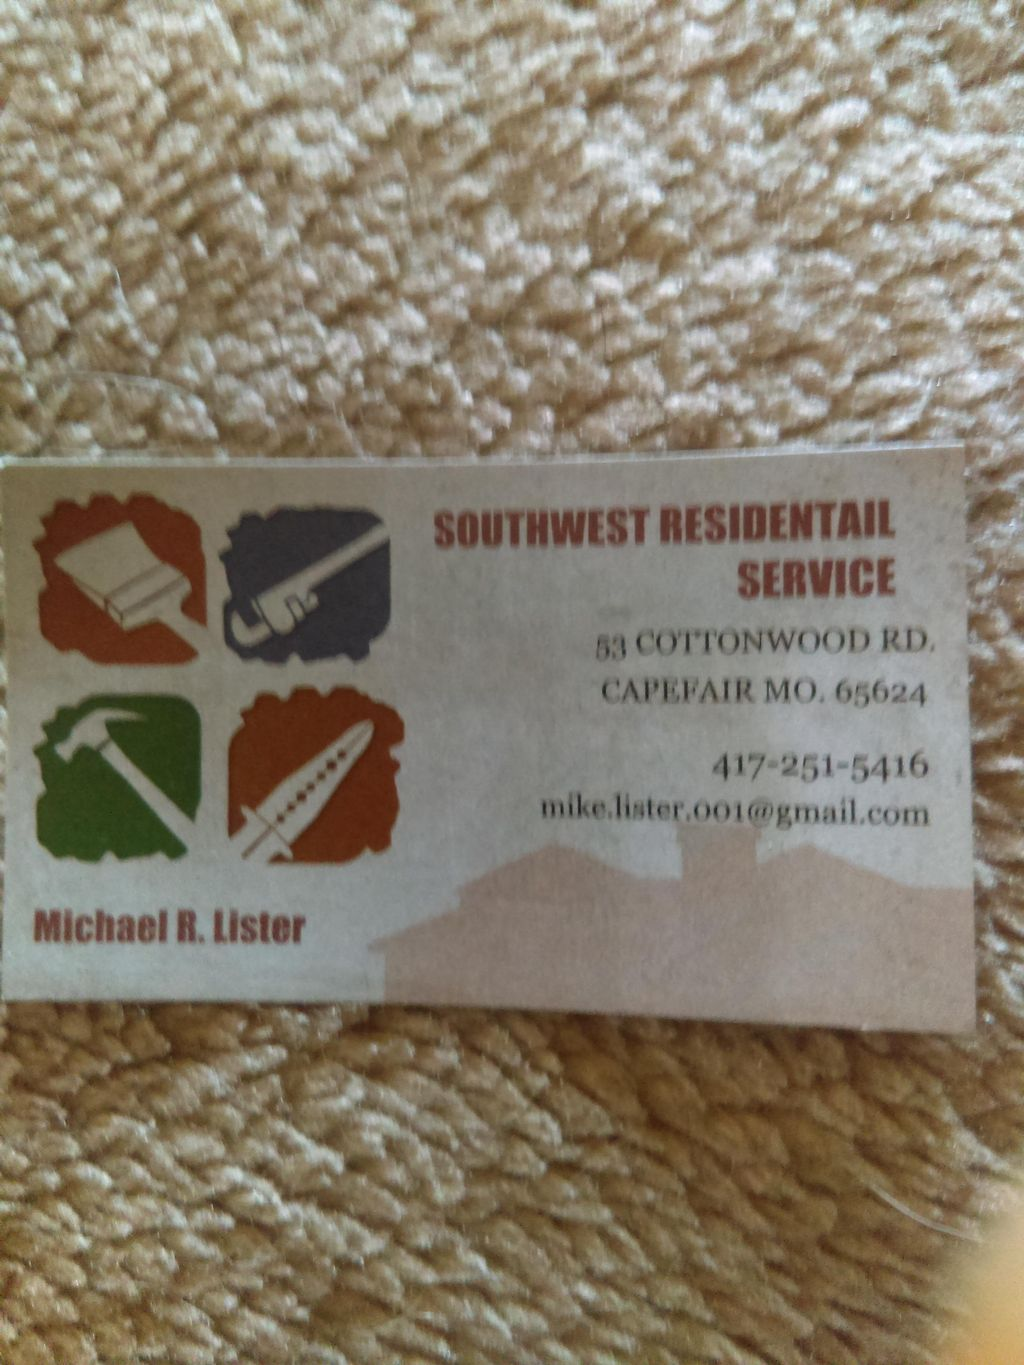 Southwest Residential Service